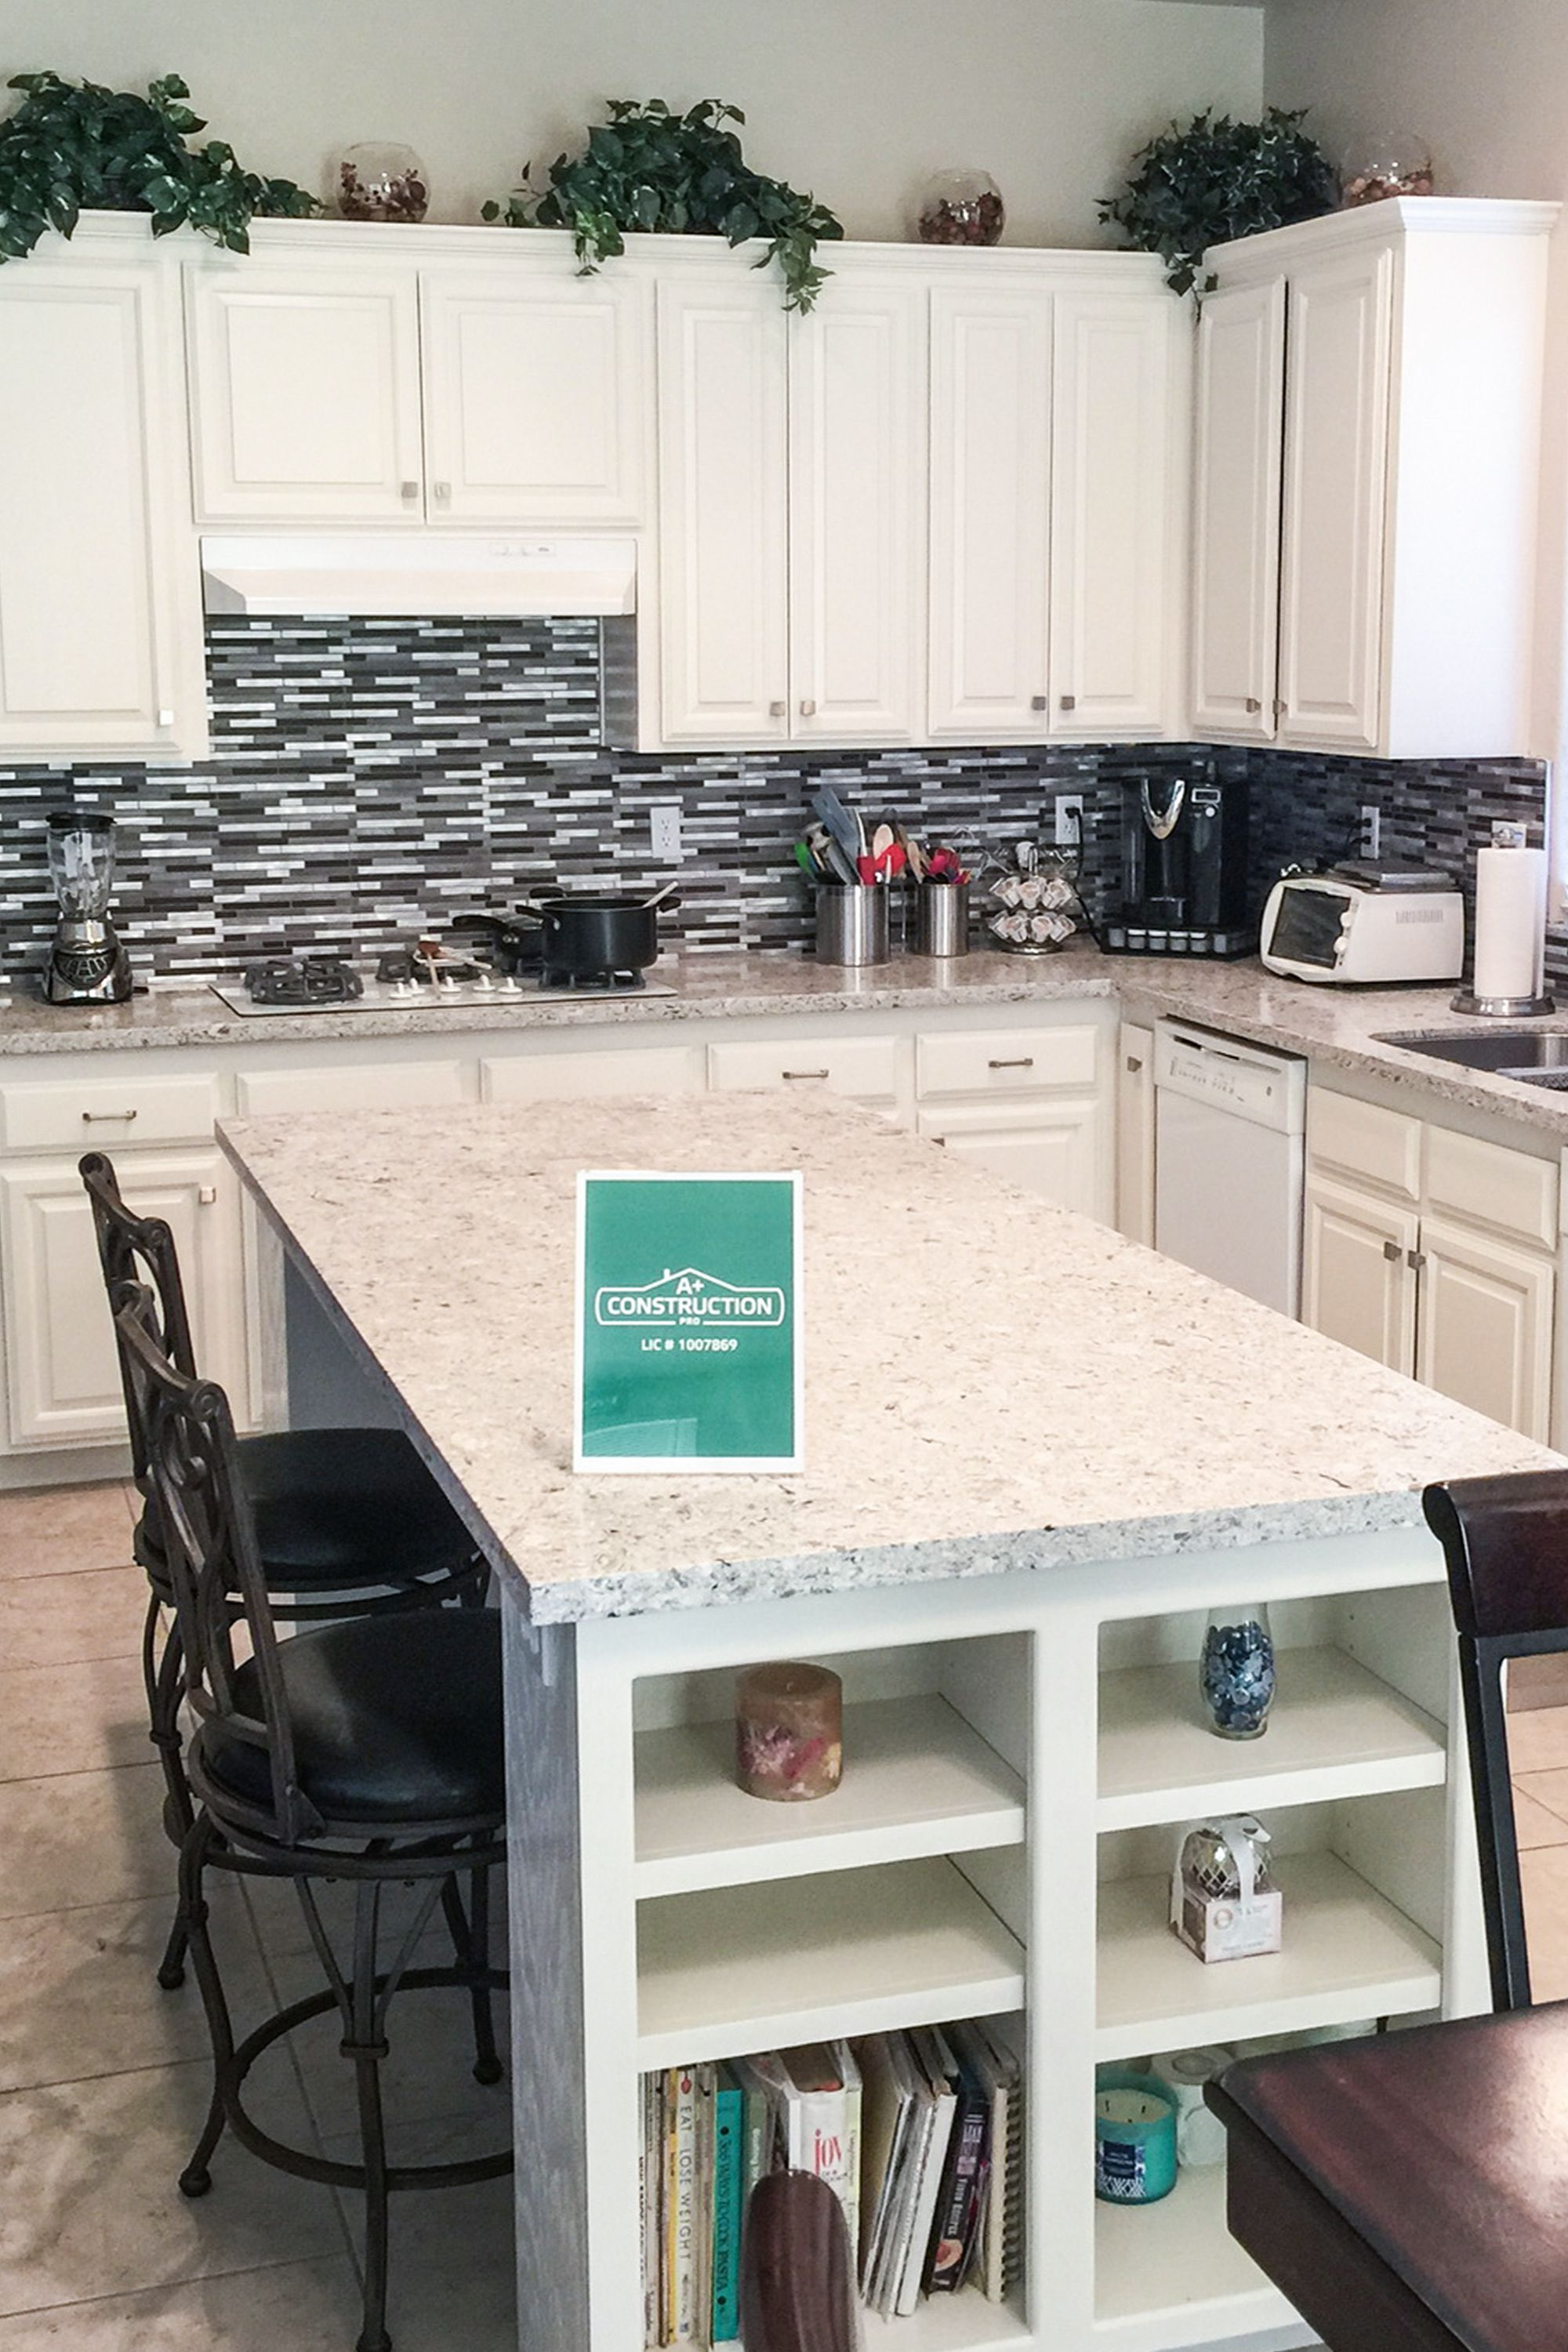 Quick and easy way to refresh your kitchen while working with a